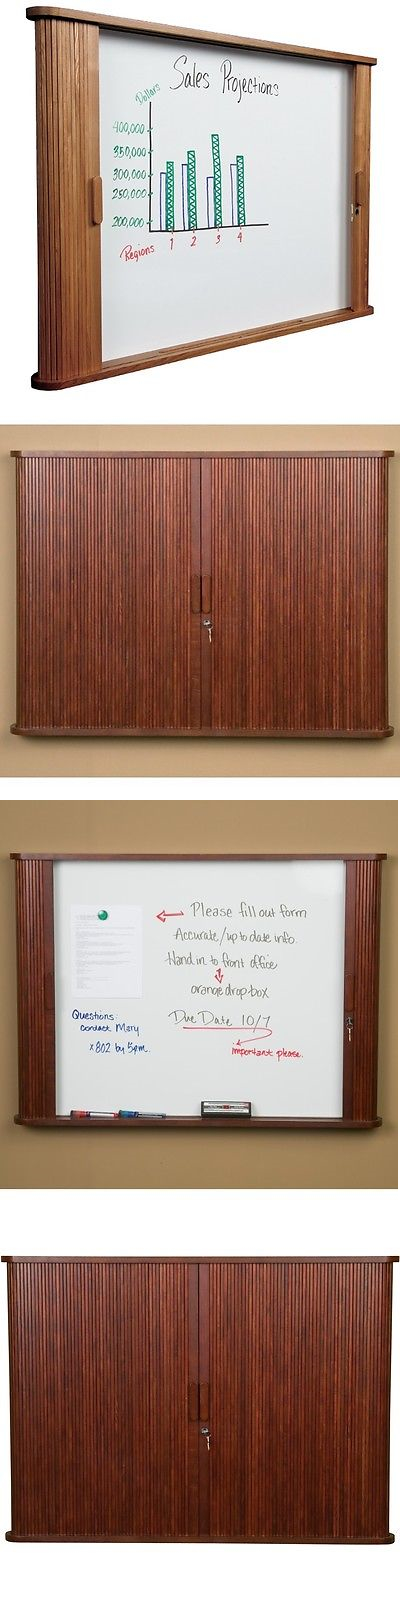 Tambour Door Whiteboard & Fits Charter Whiteboard Privacy Office ...